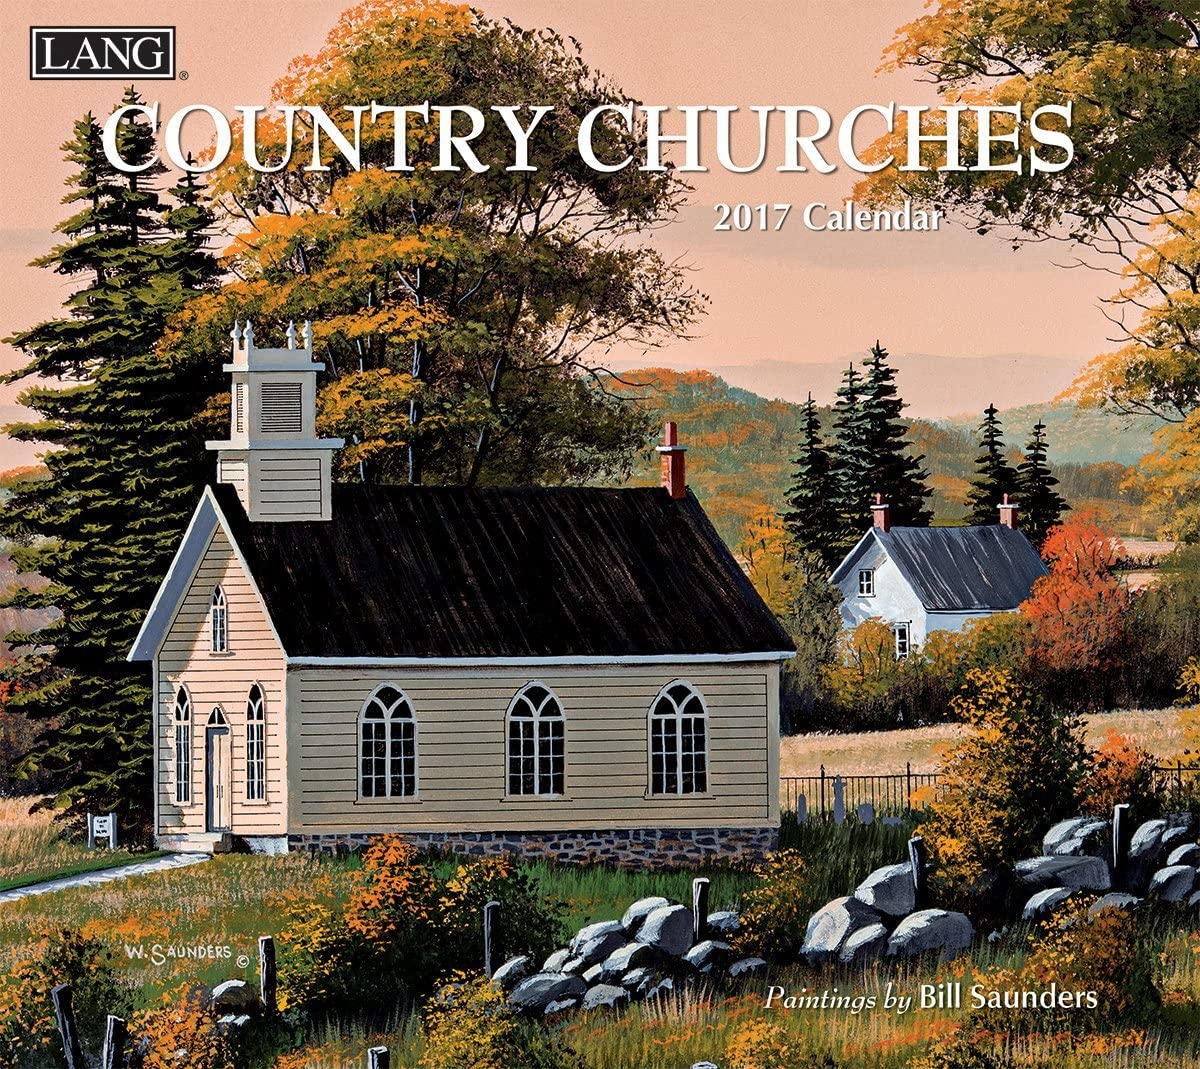 Lang 2017 Country Churches Wall Calendar, 13.375 x 24 inches (17991001904)